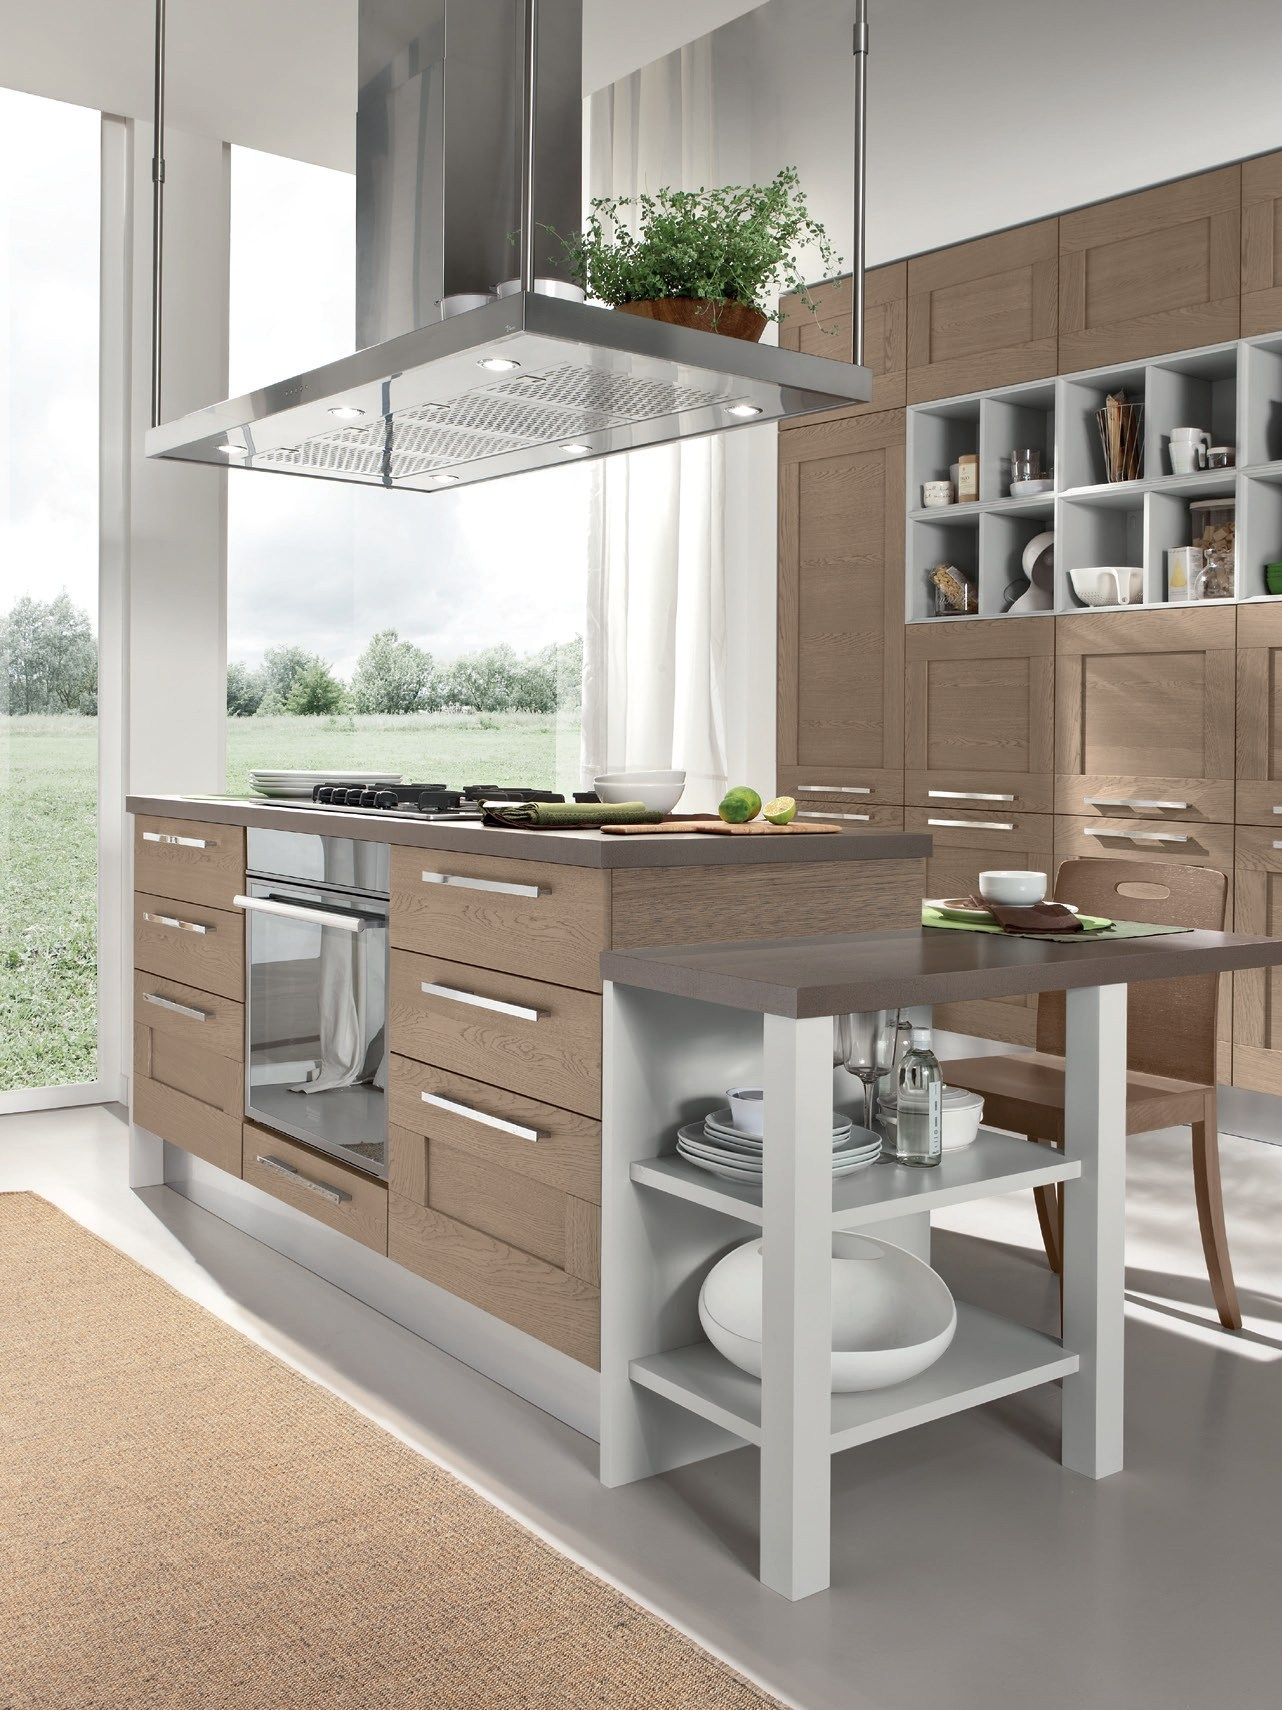 Beautiful Cucine Lube Gallery Images - Design & Ideas 2017 - candp.us